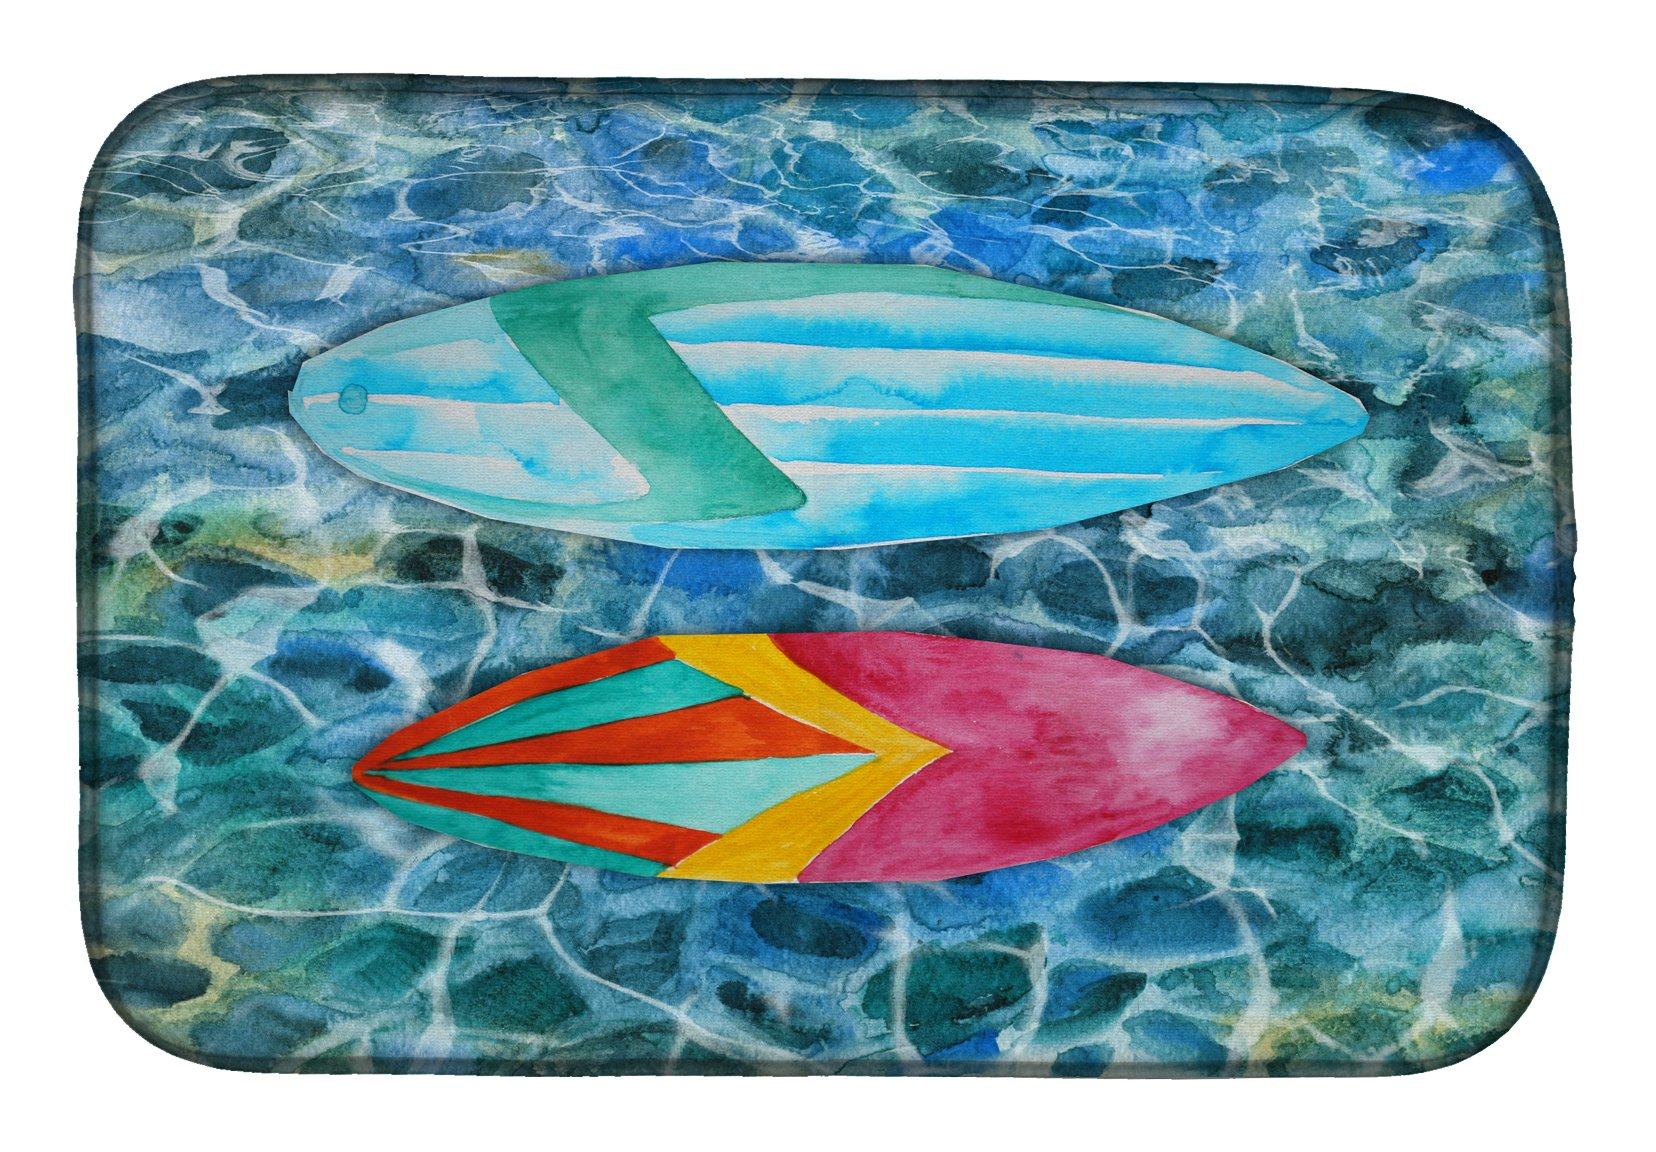 Surf Boards on the Water Dish Drying Mat BB5366DDM by Caroline's Treasures